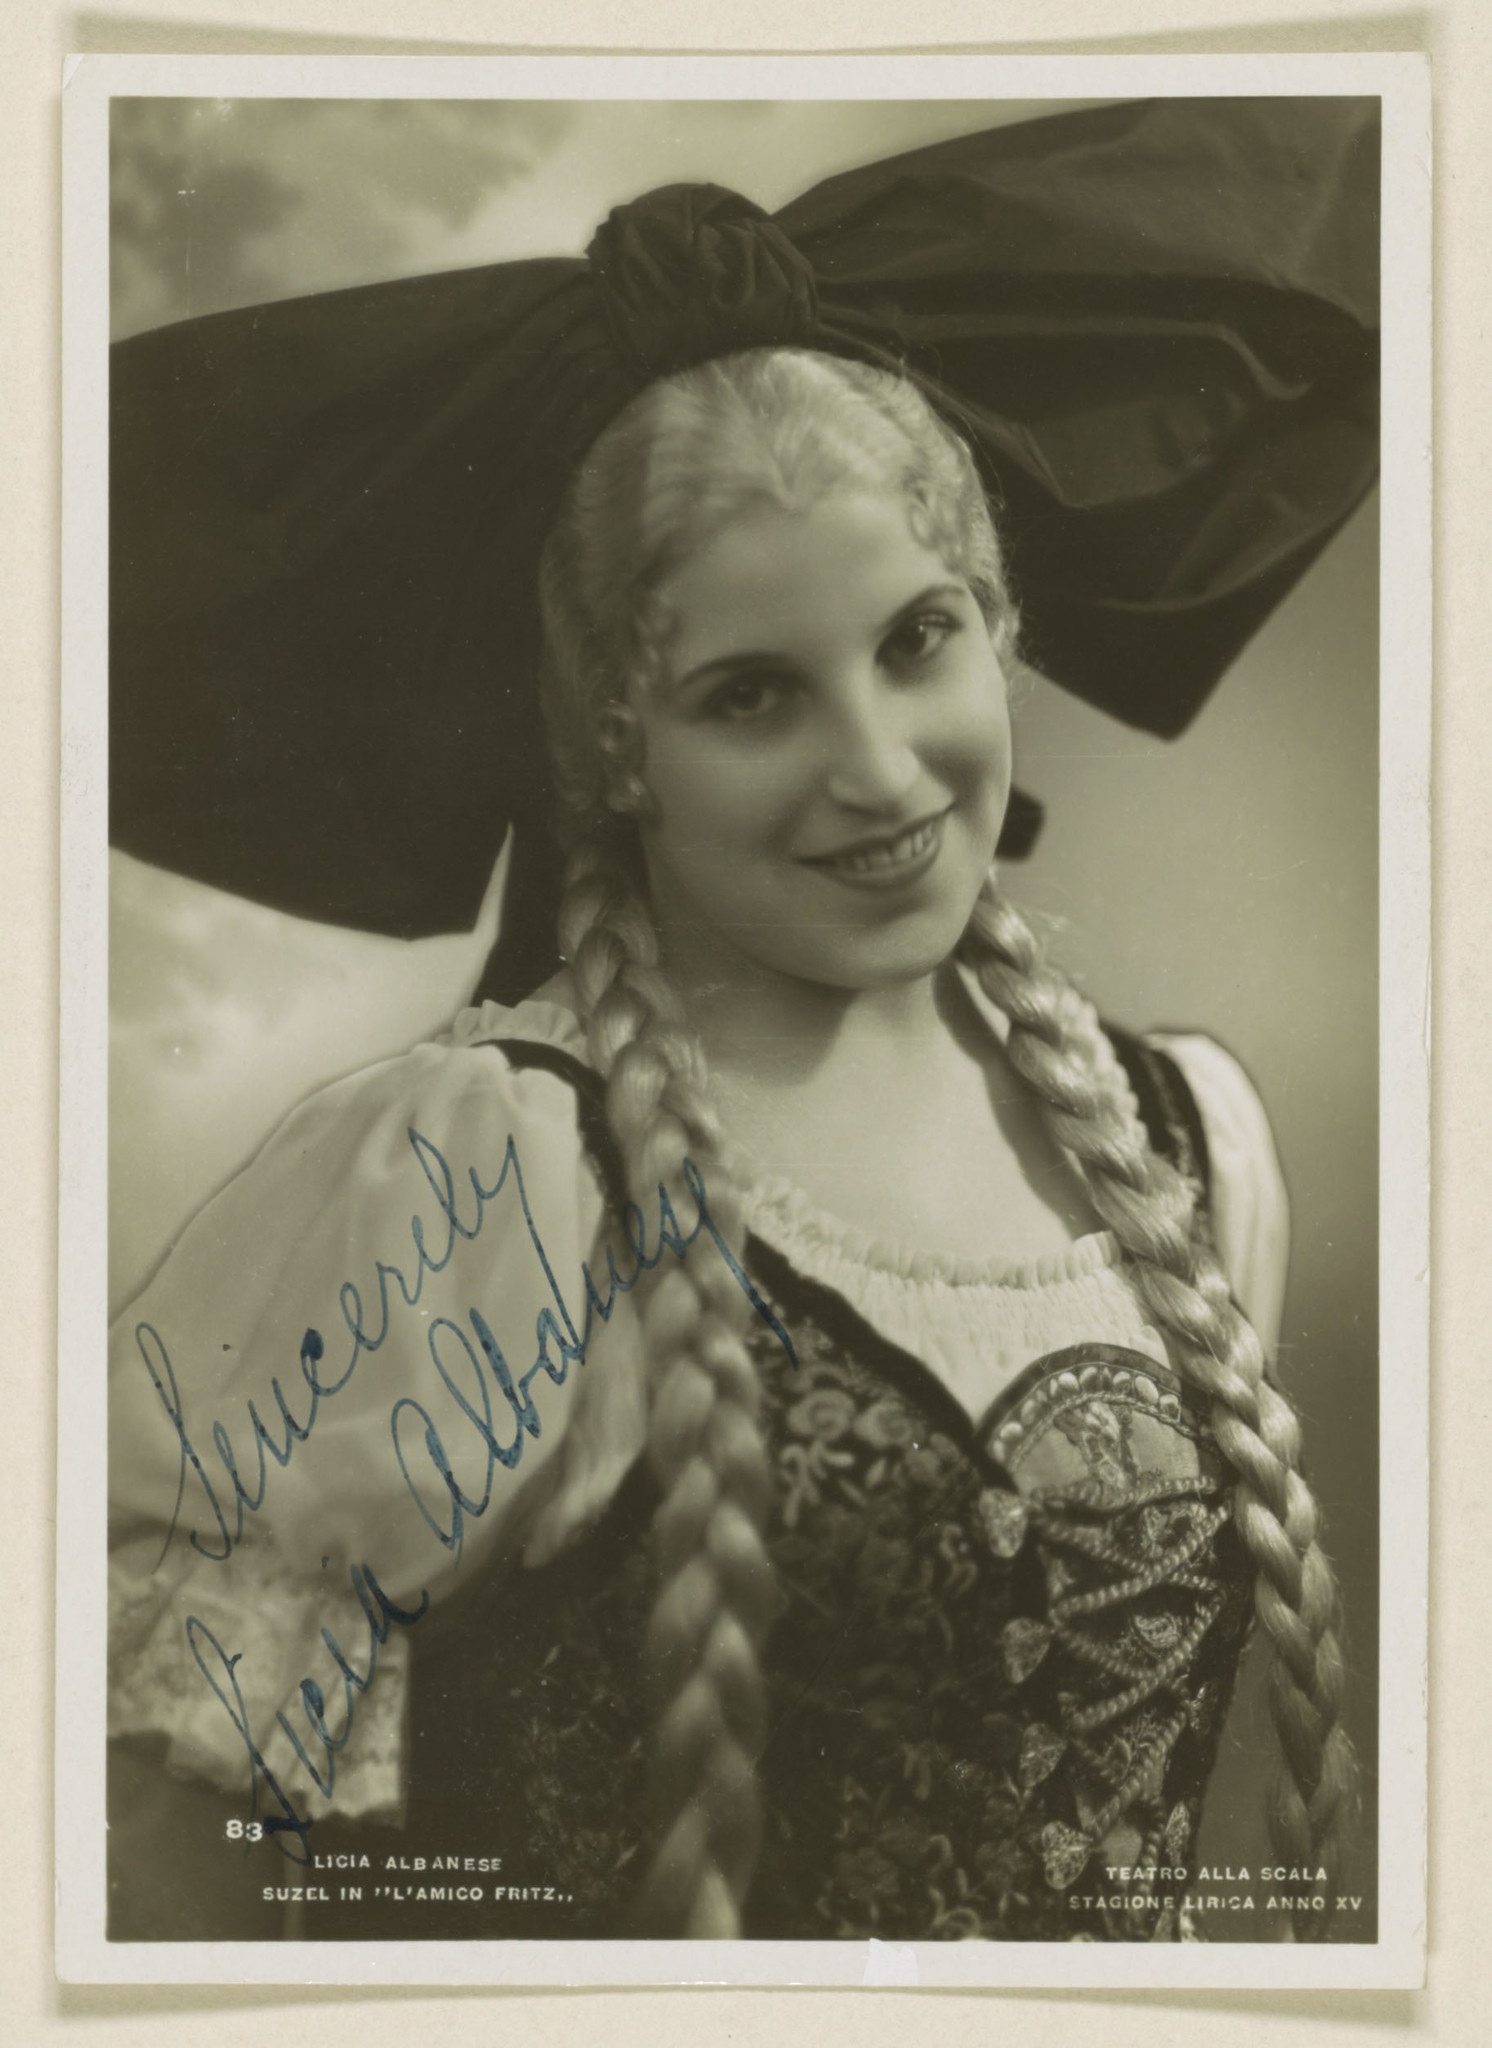 Licia Albanese as Suzel in